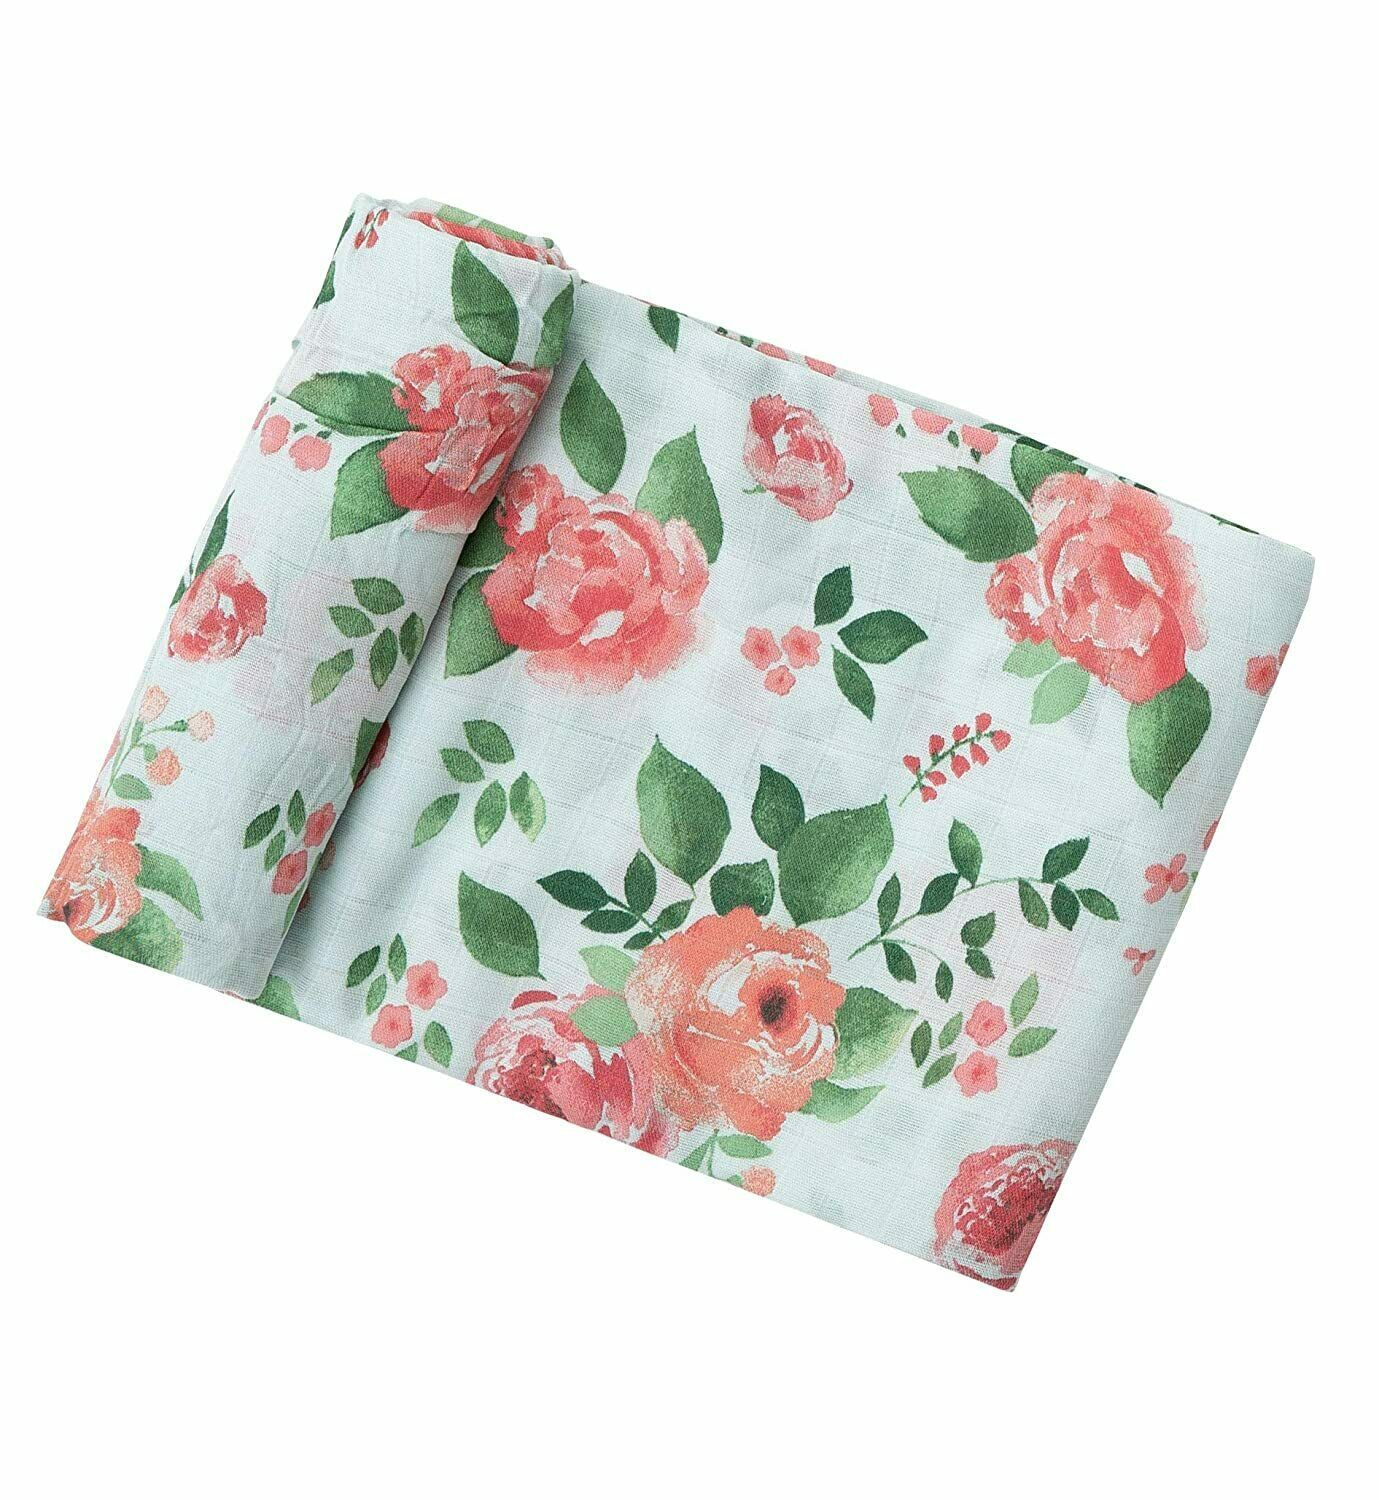 """Angel Dear Luxurious Soft Swaddle Baby Blanket, Floral - Large 47x47"""" Gift Idea - $15.83"""